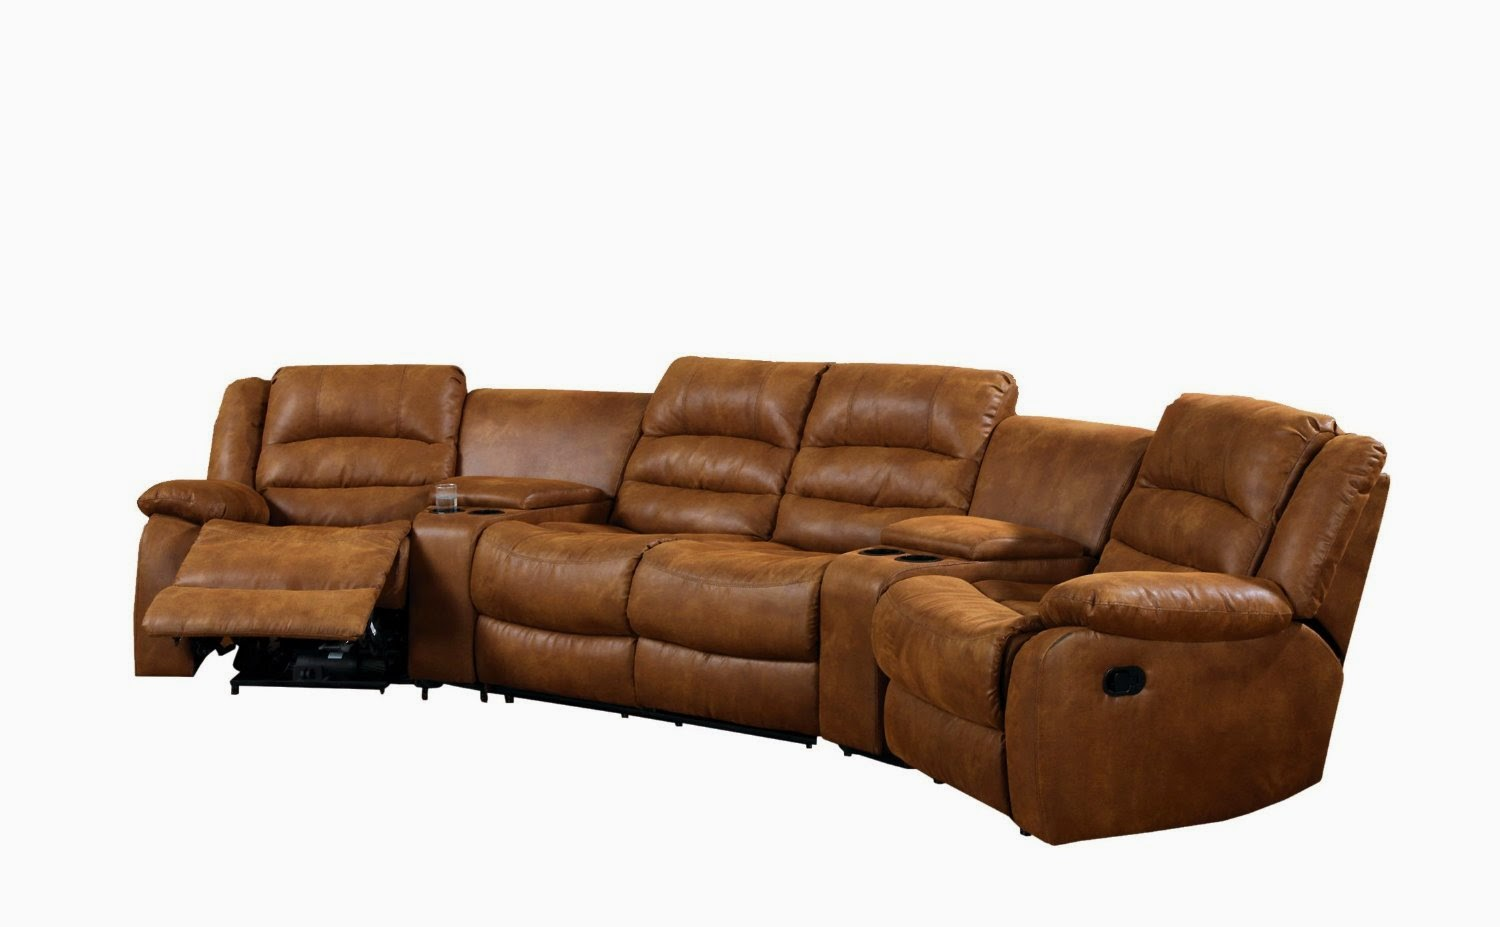 Reclinable Sectional Sofas Wooden Sofa Designs With Dimensions Best Reclining For The Money Whitaker Brown